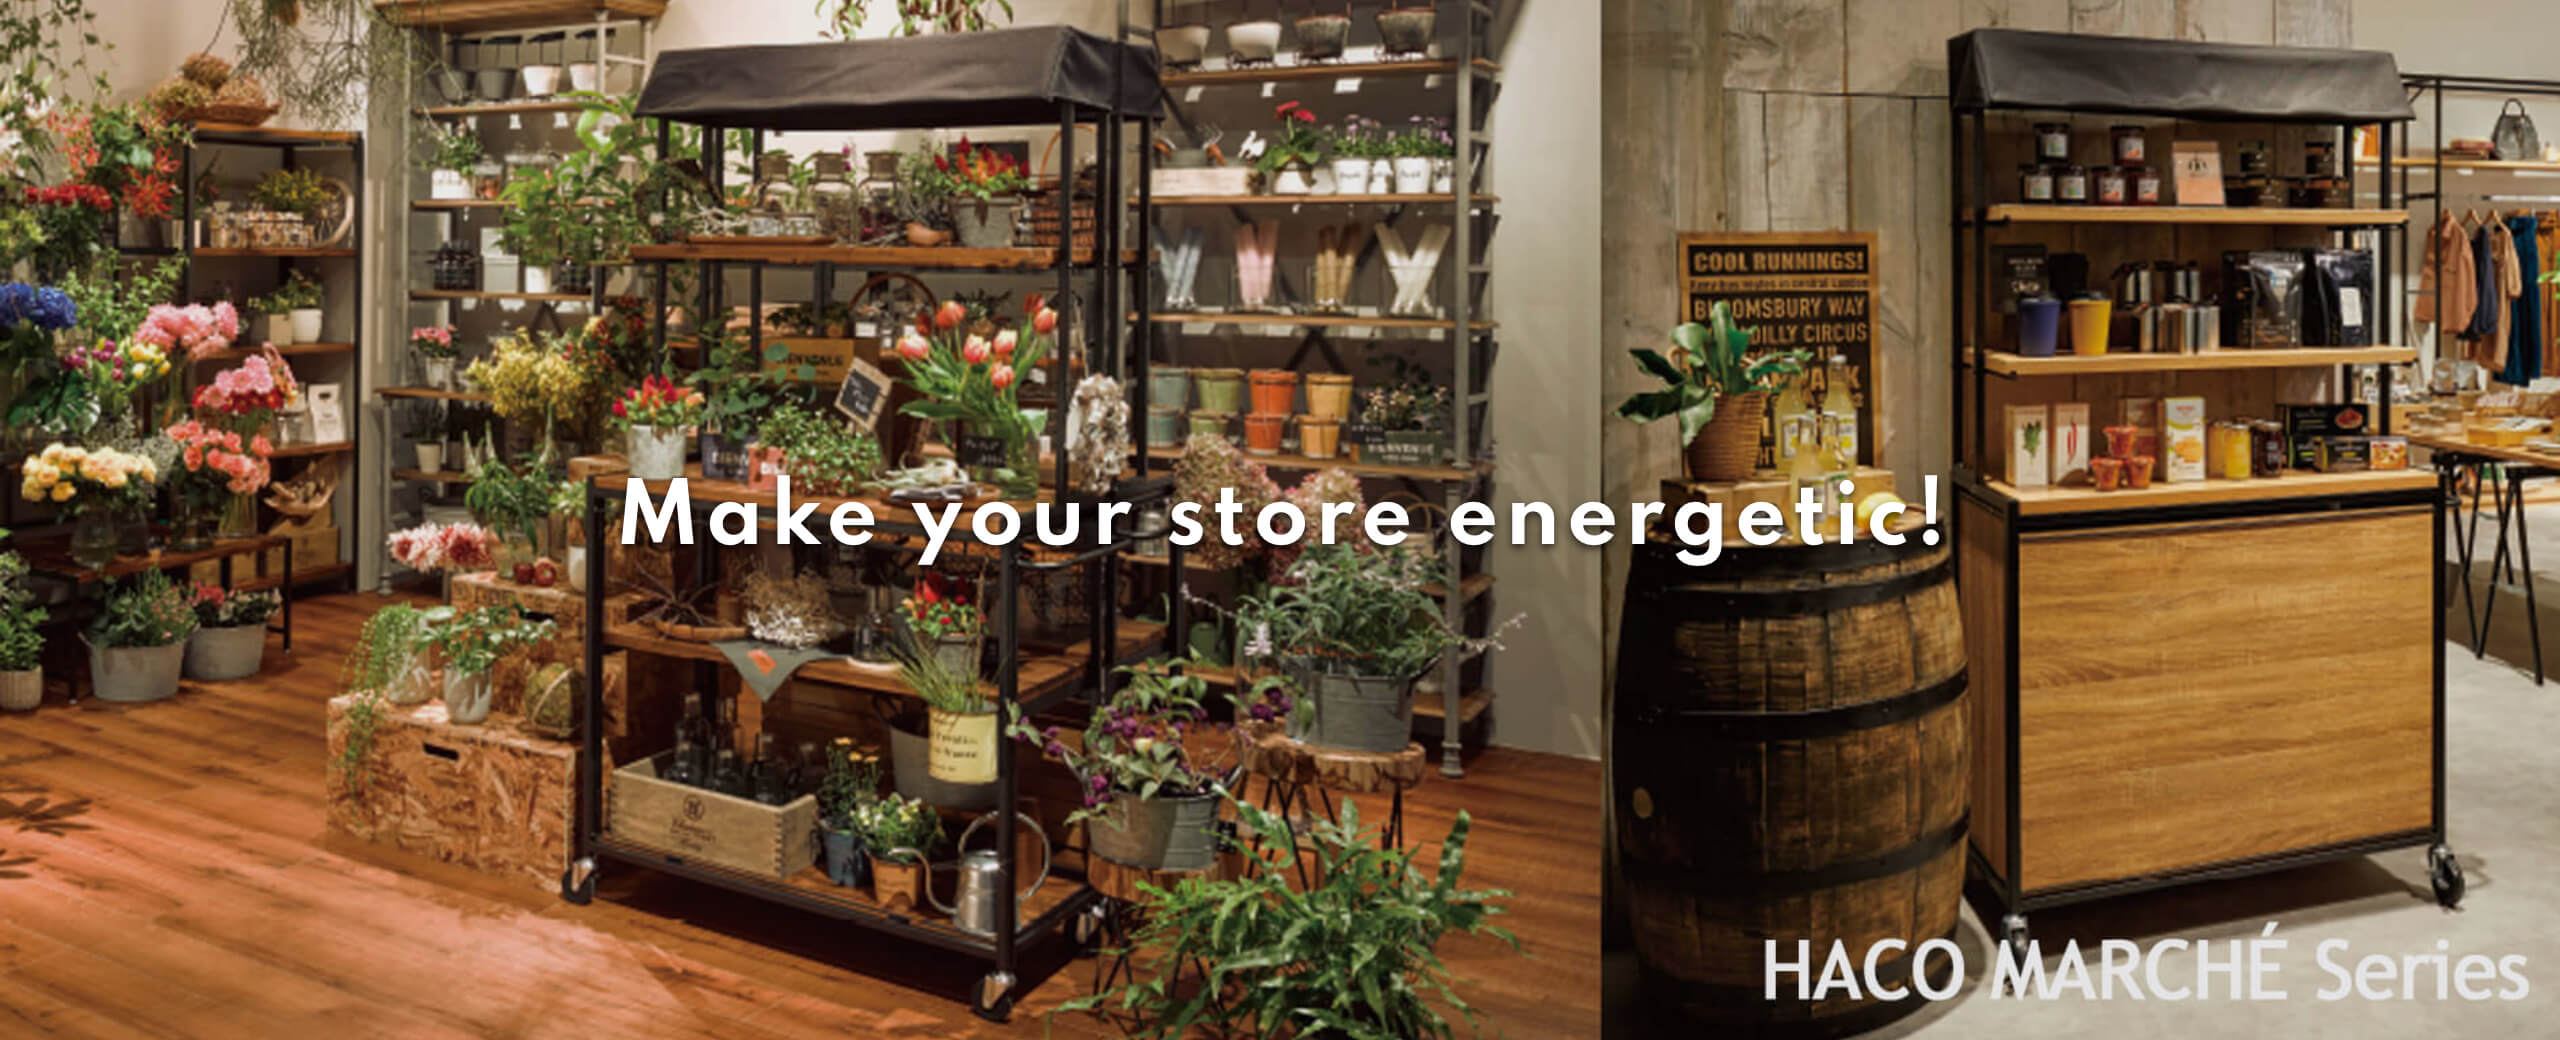 Make your store energetic!